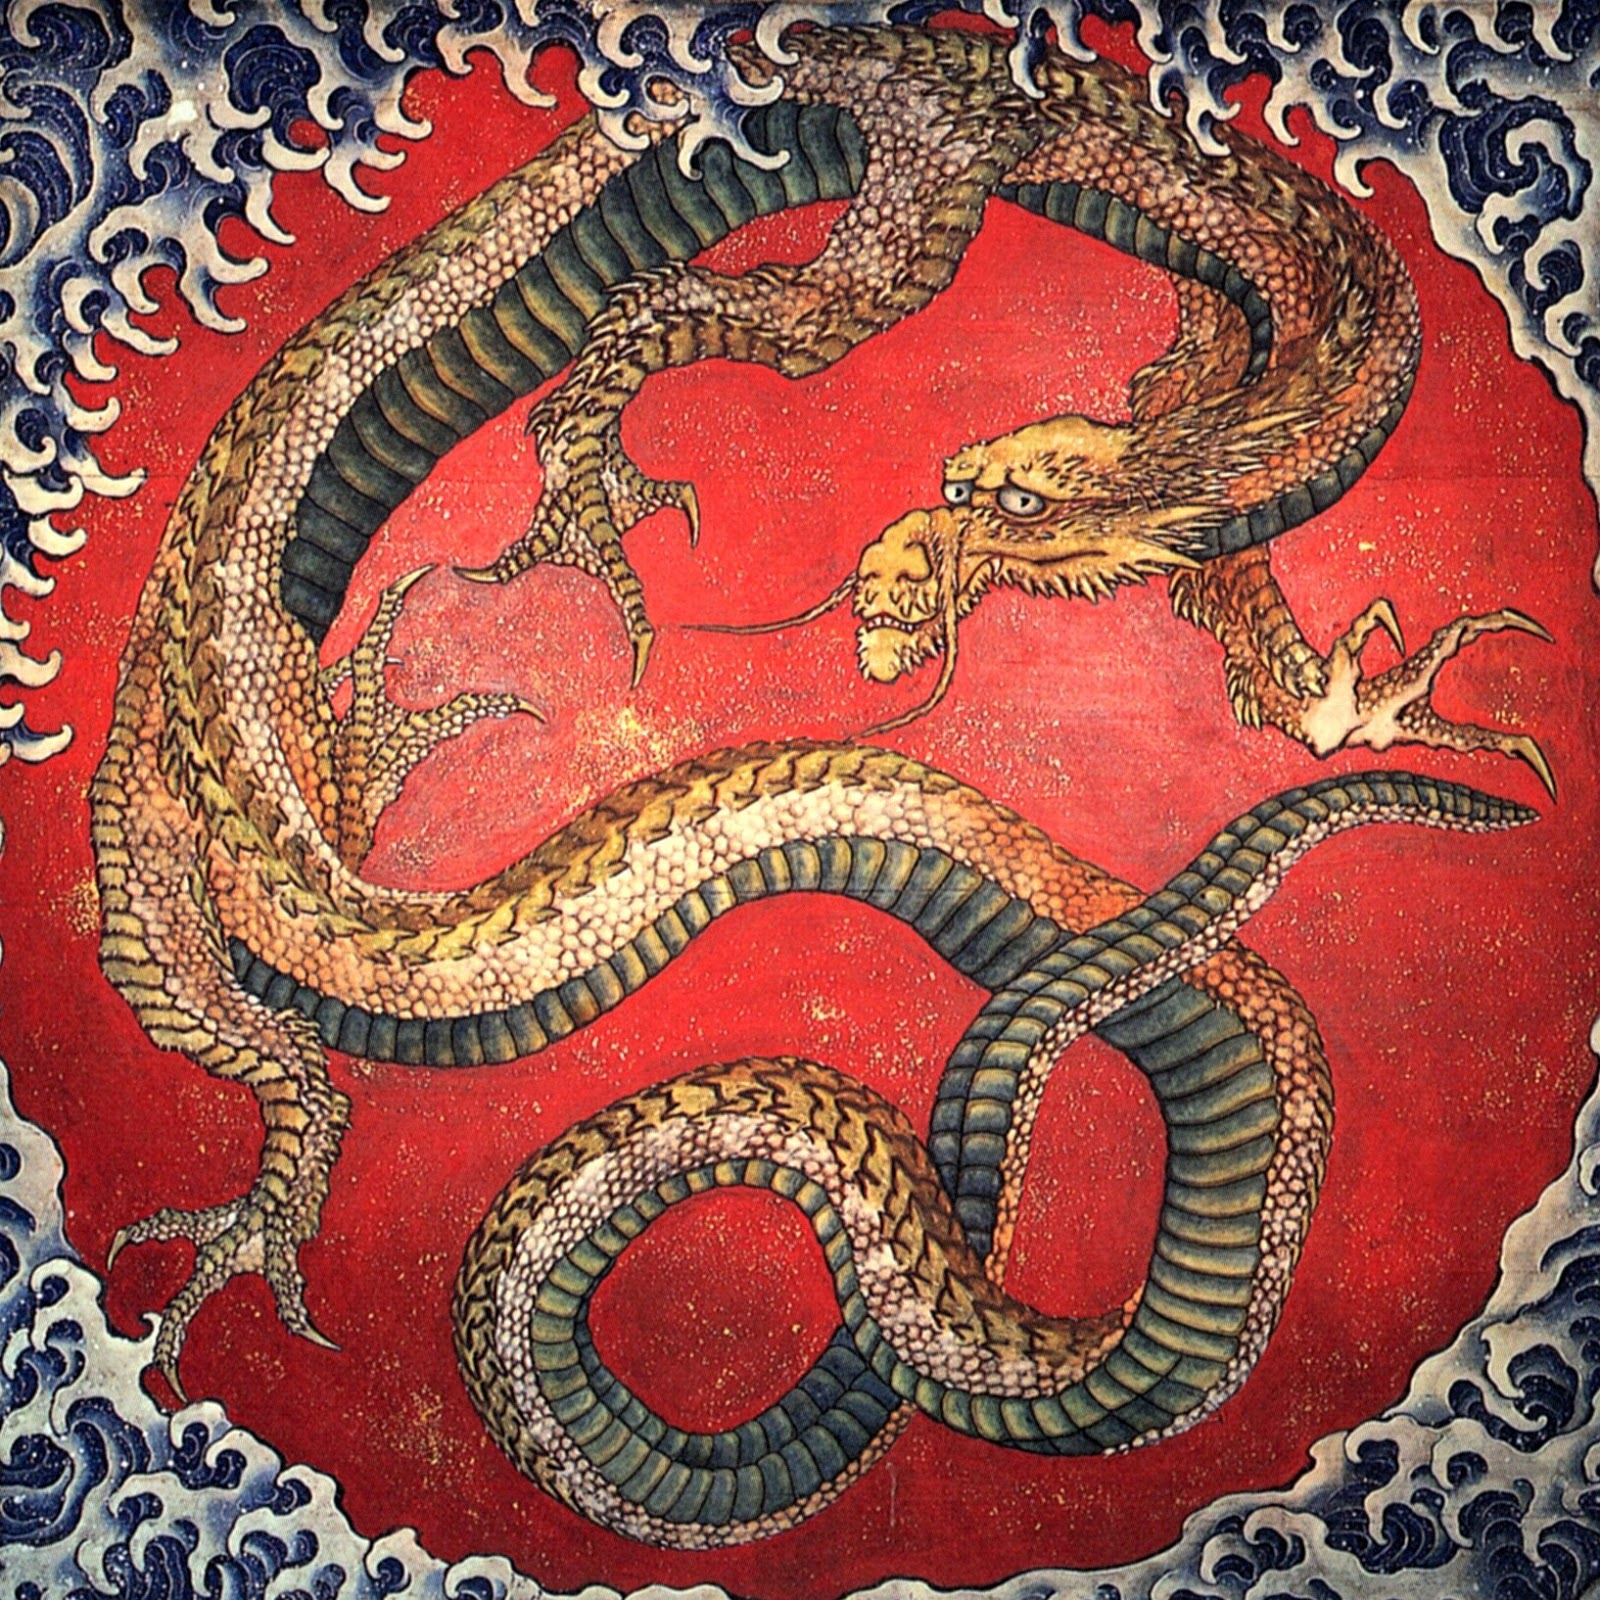 origin of dragons in mythology stories